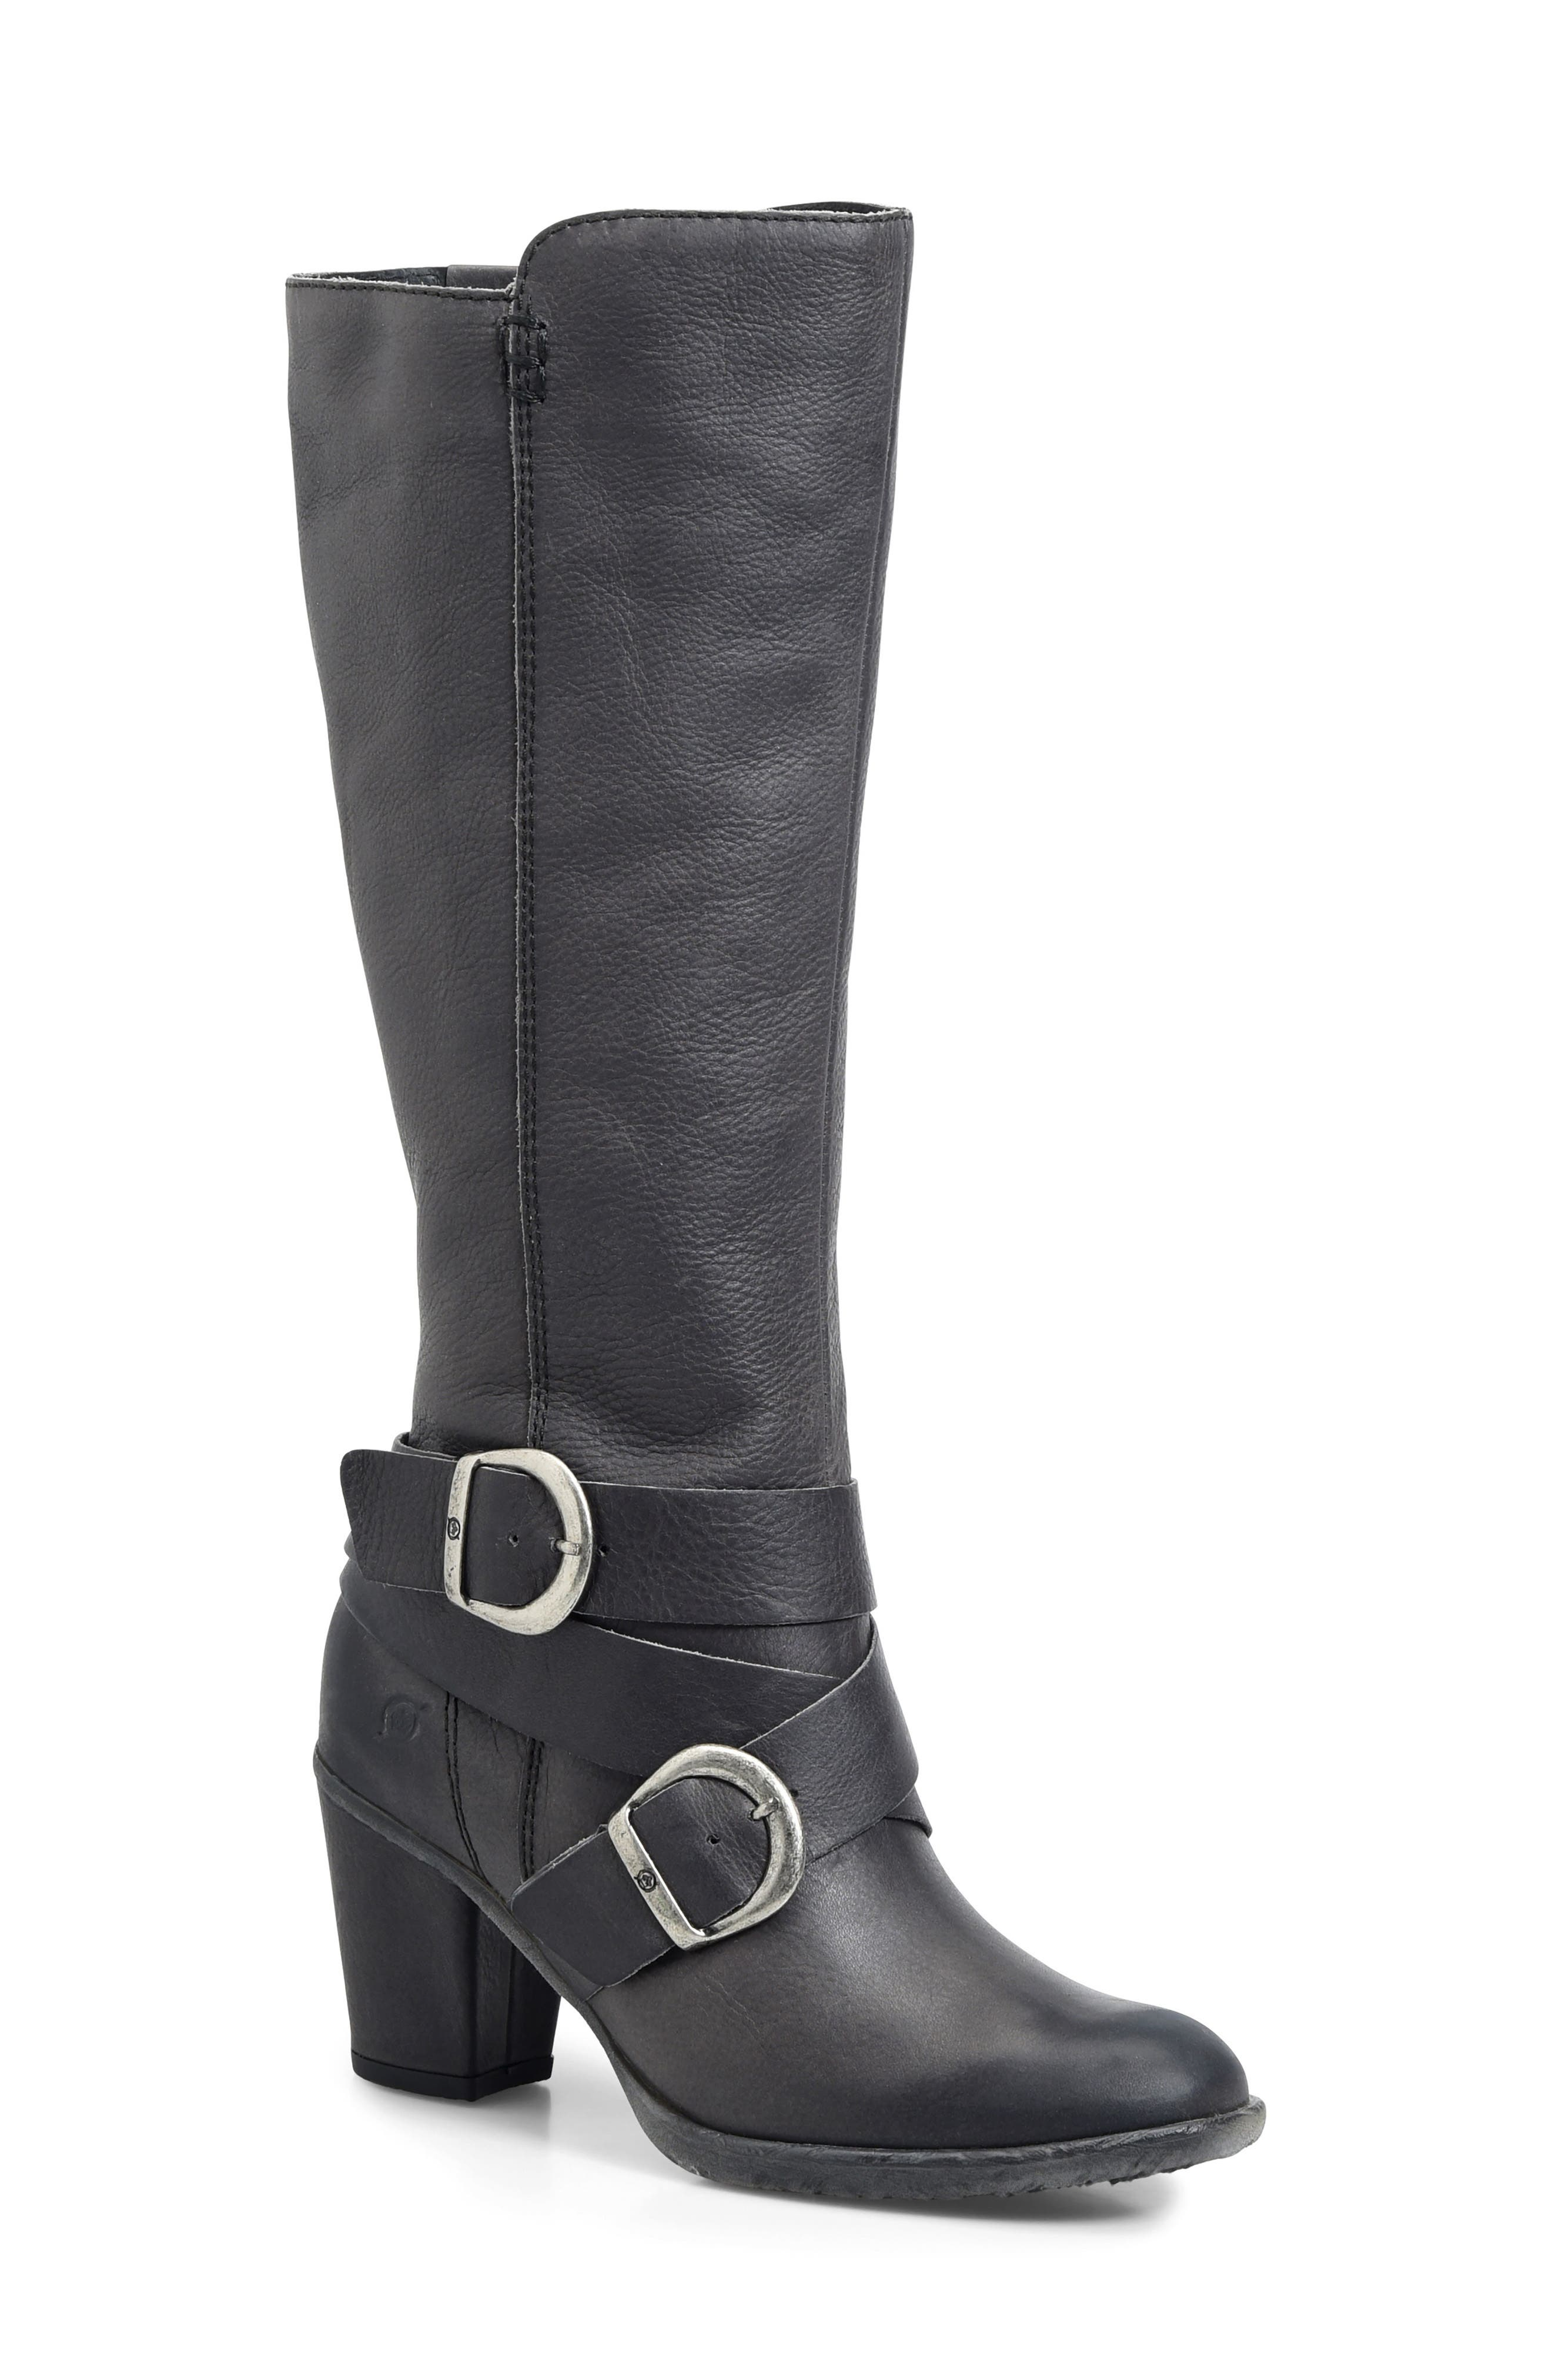 Cresent Knee High Boot,                         Main,                         color, 026